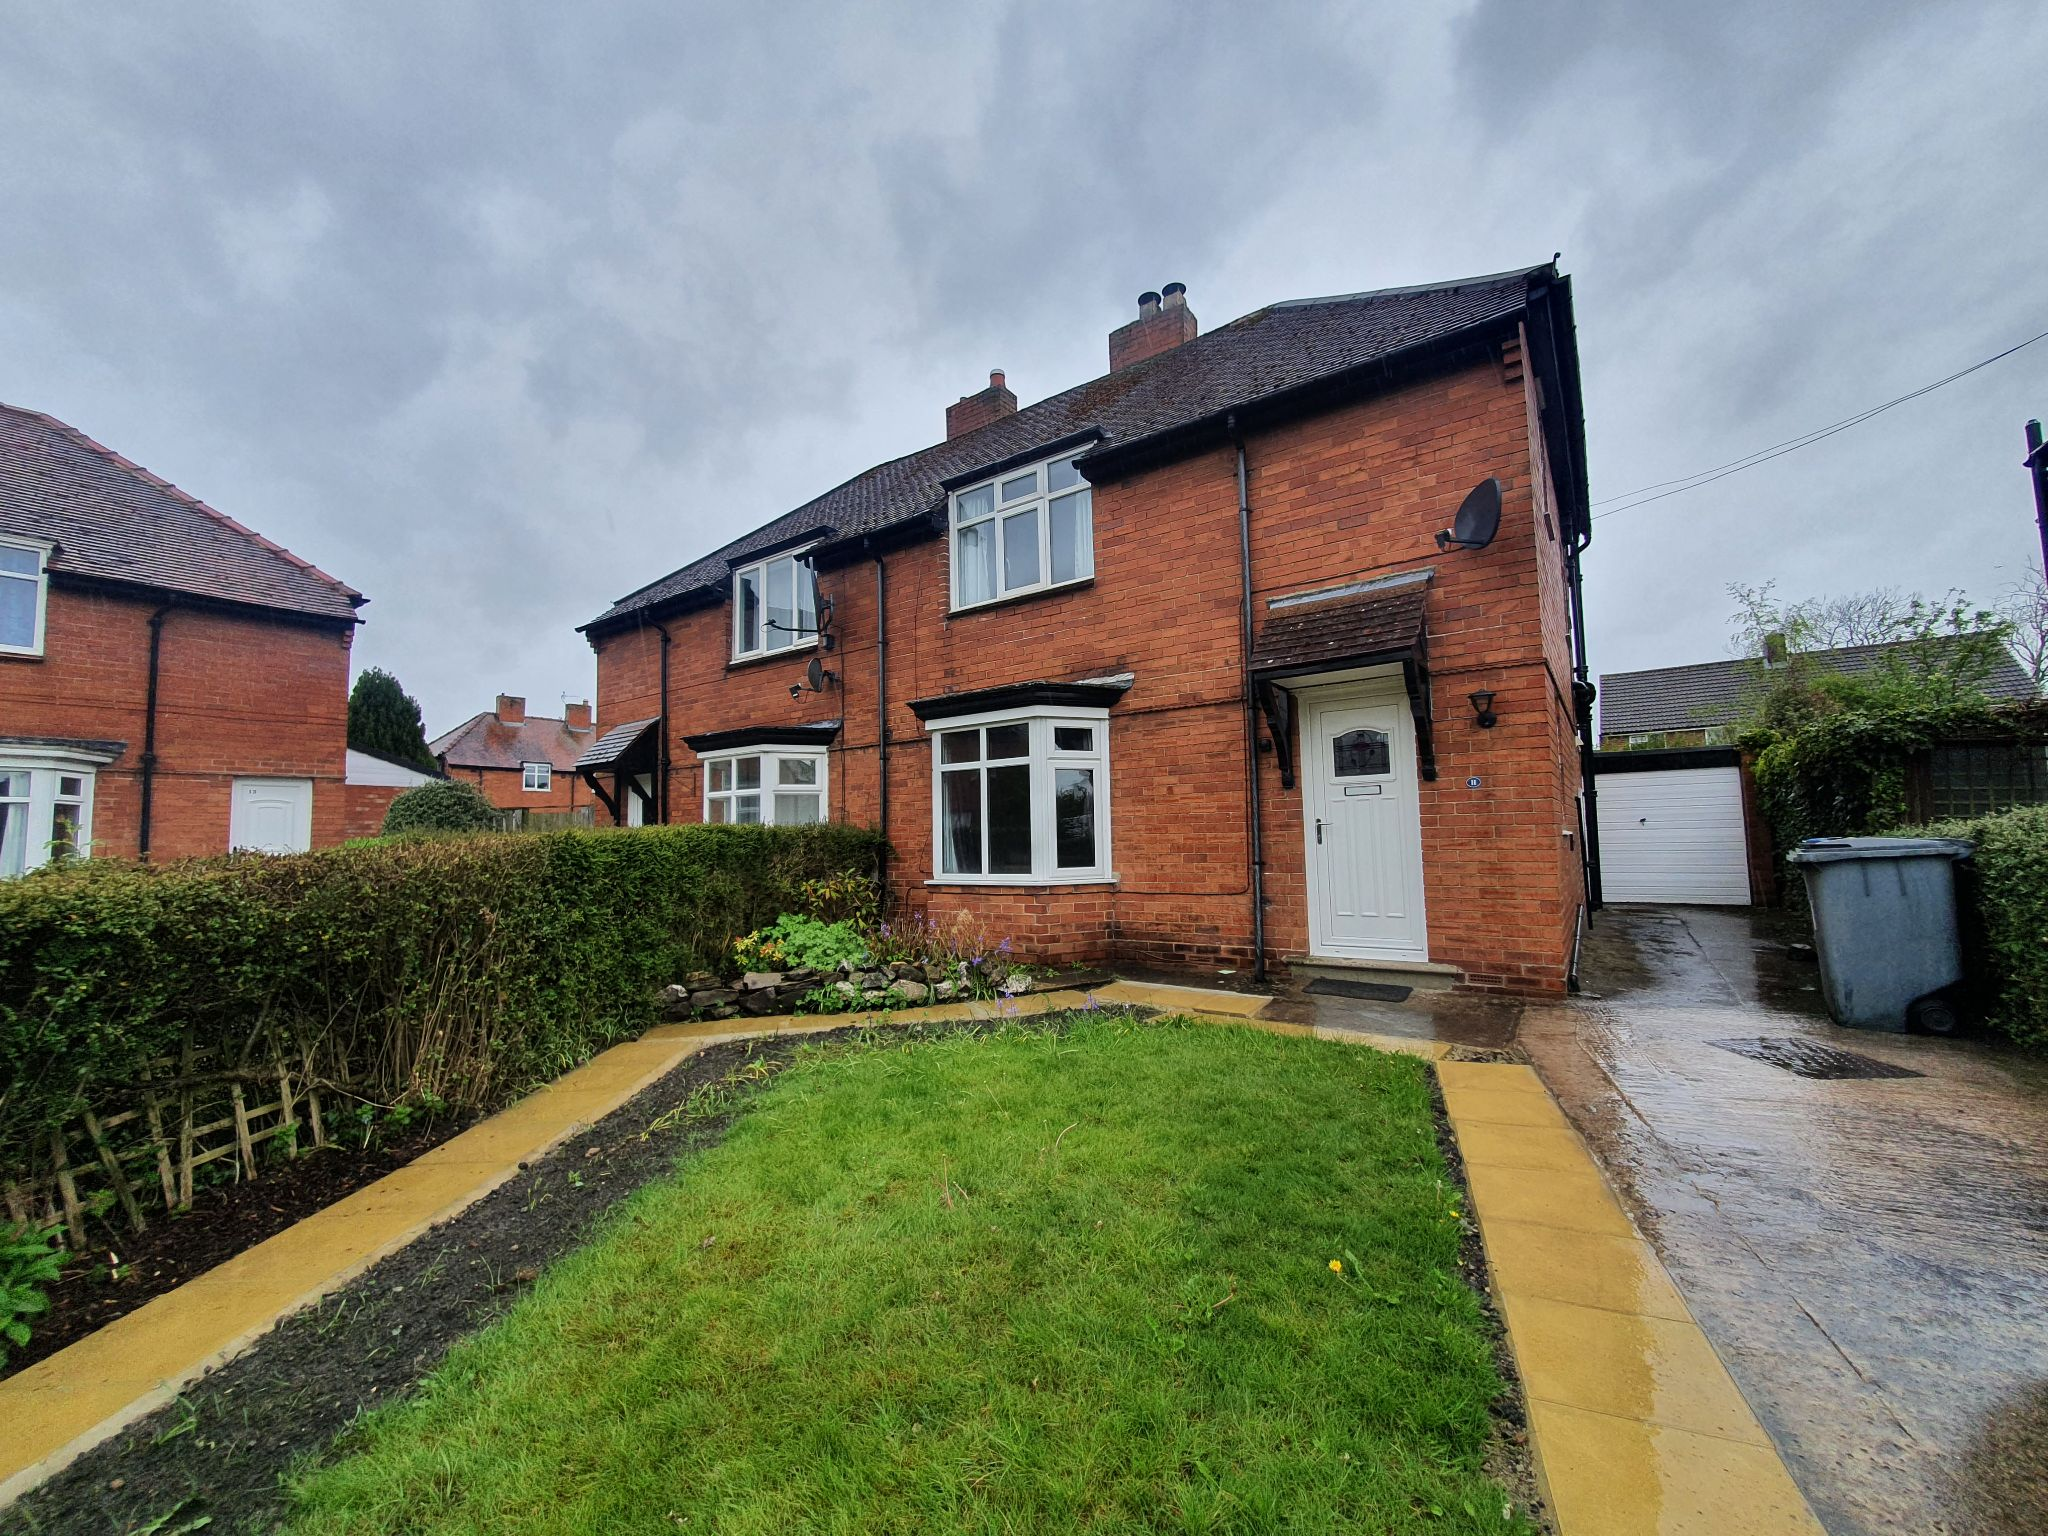 3 bedroom semi-detached house Let Agreed in Durham - Photograph 1.